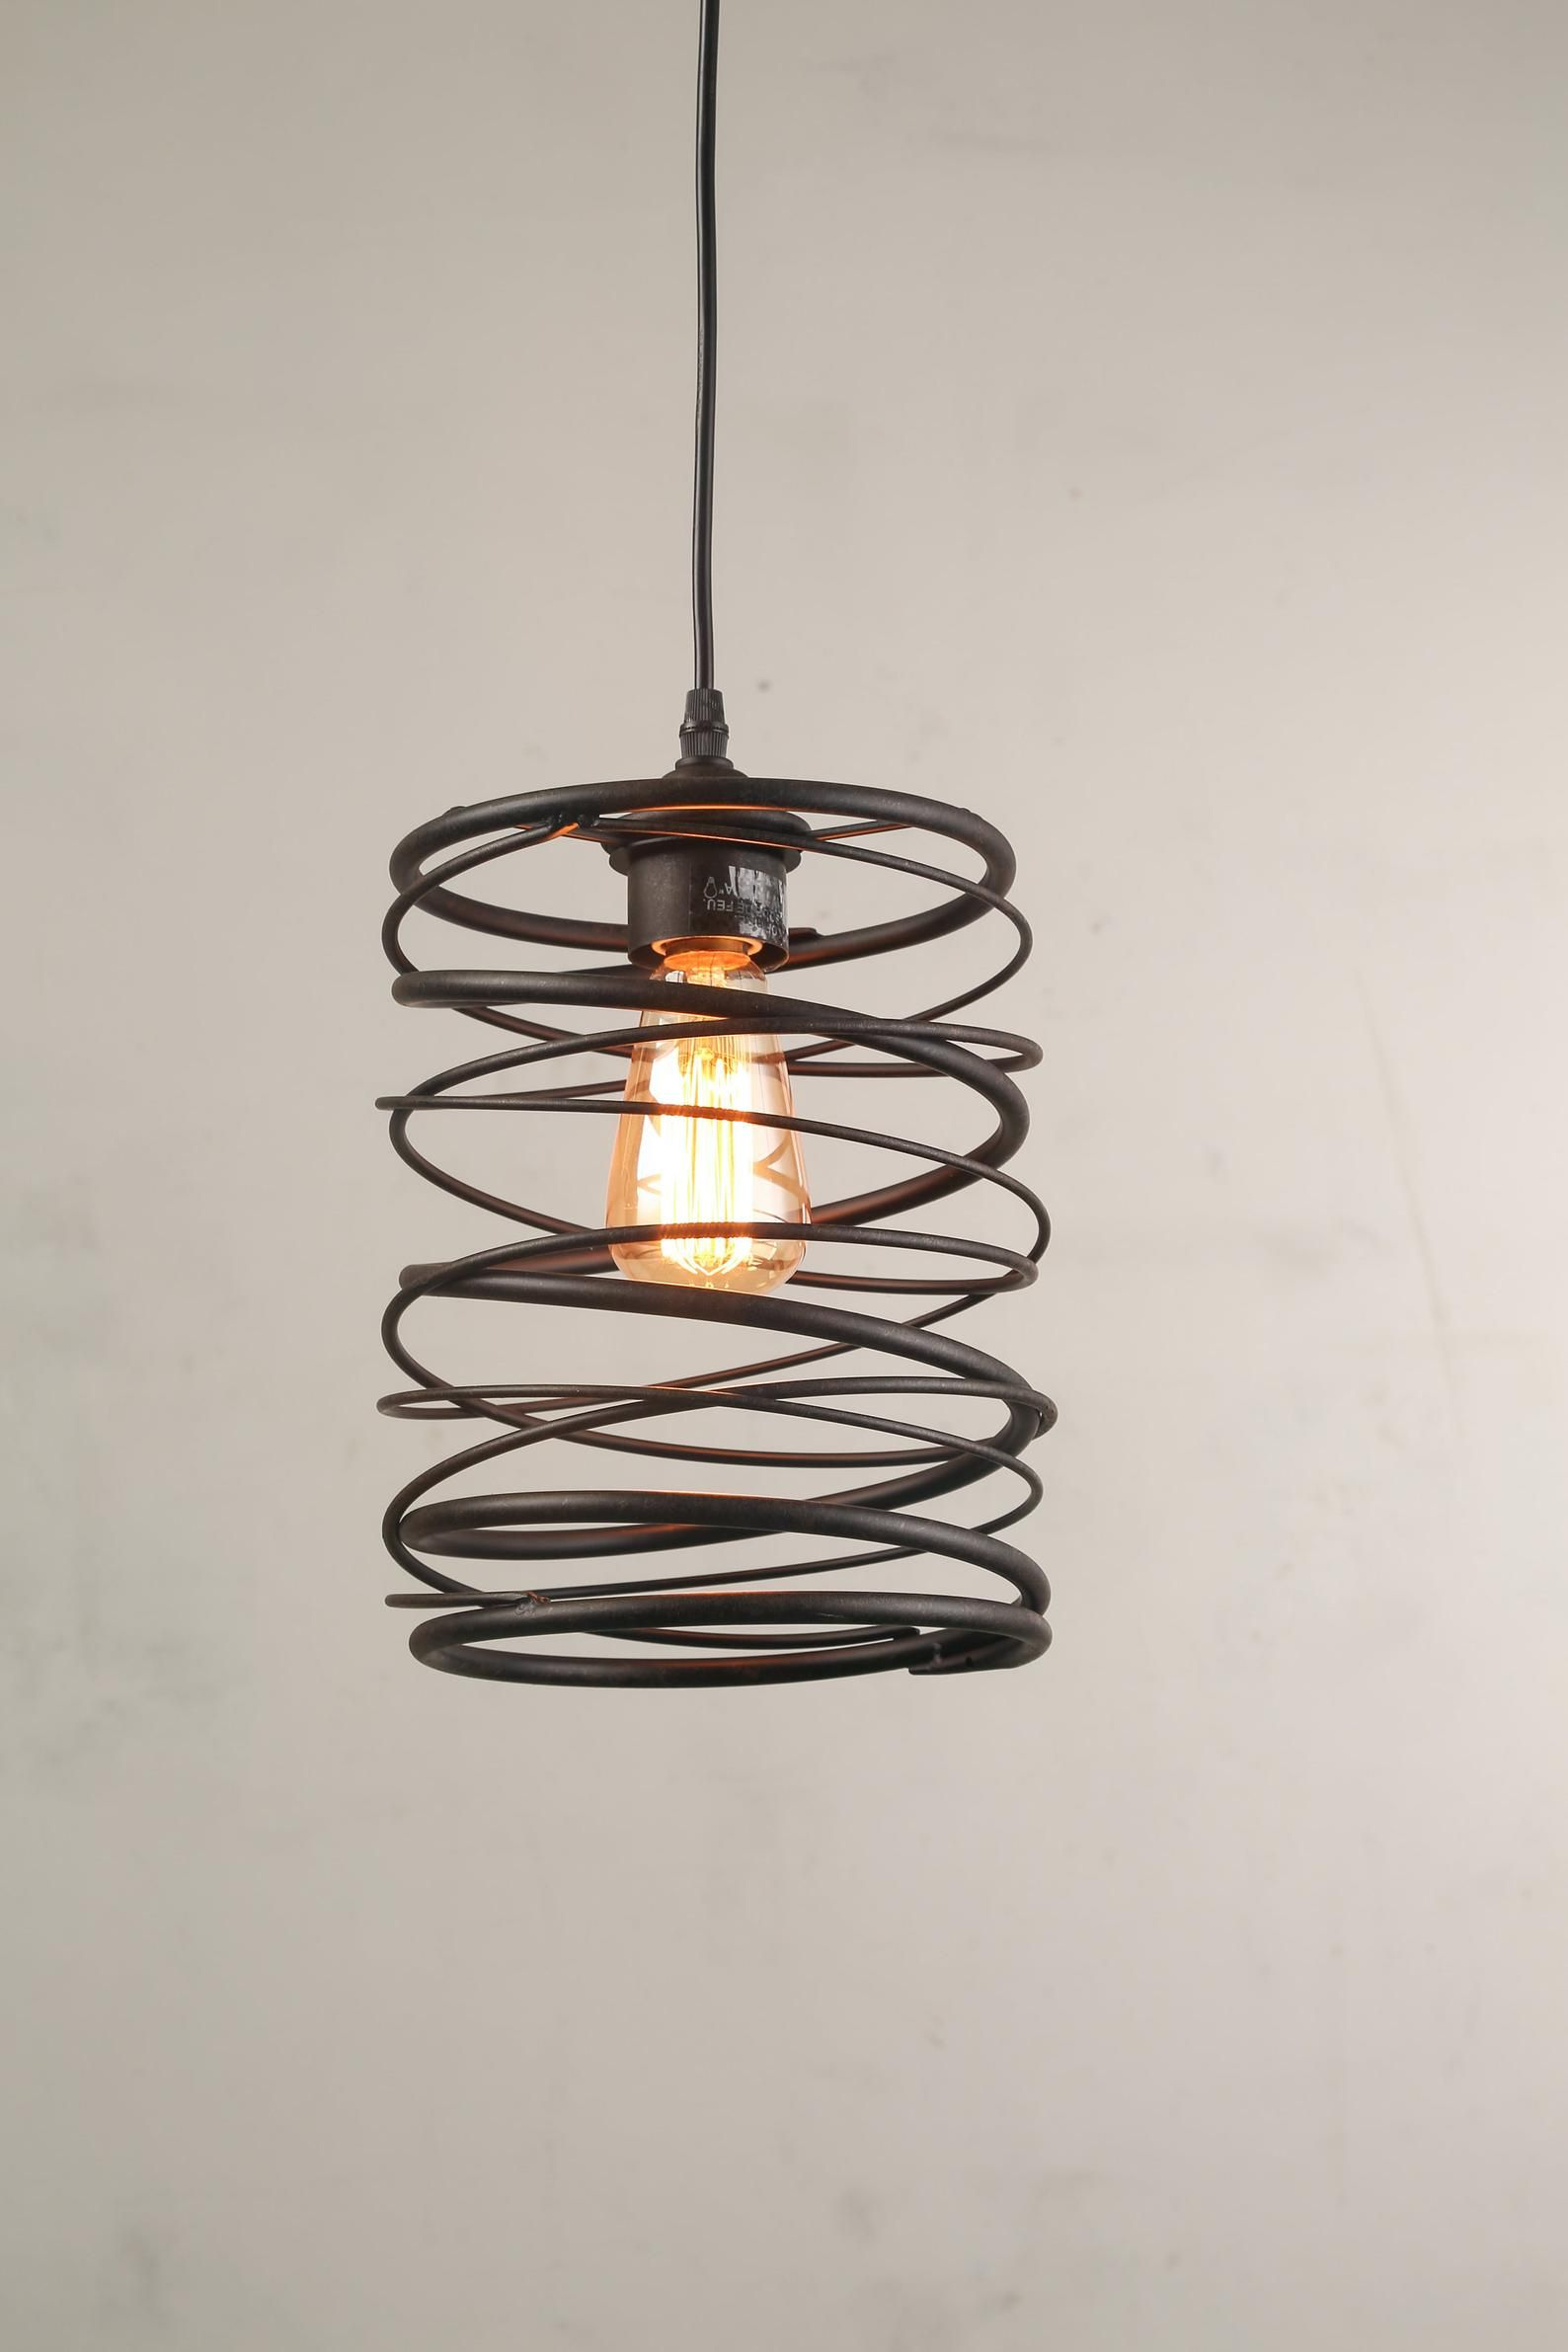 This Item Is Unavailable Etsy In 2021 Ceiling Pendant Lights Ceiling Lights Contemporary Ceiling Light